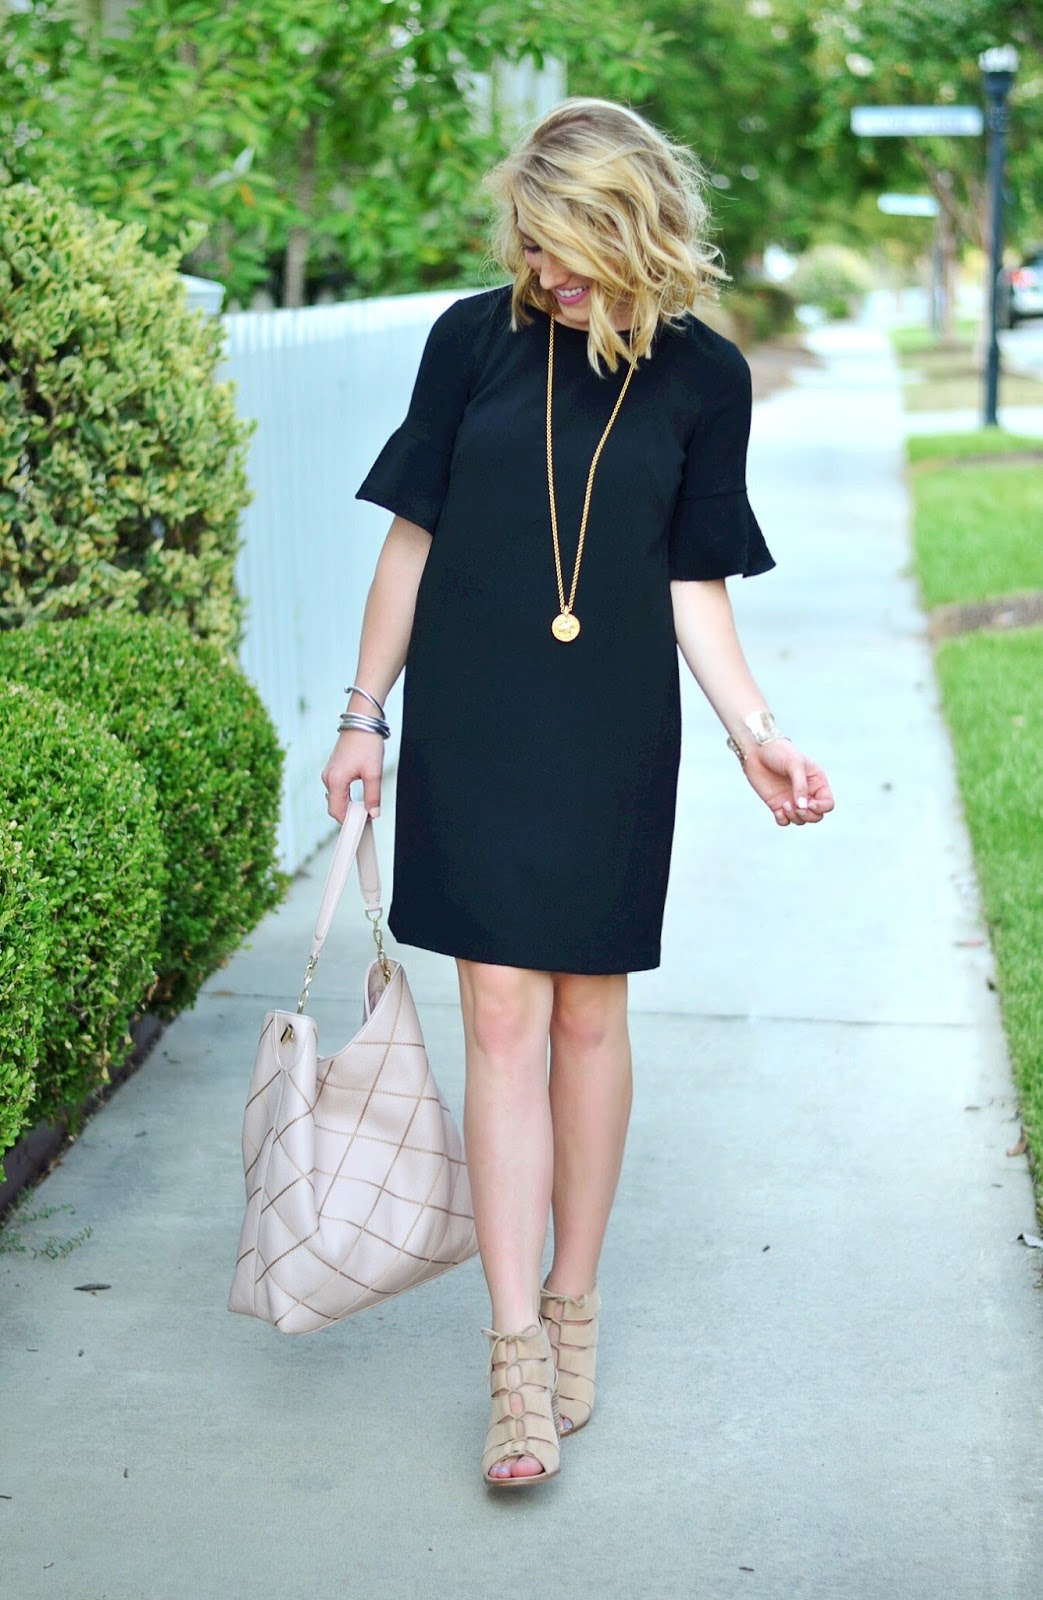 The perfect little black Dress (Something Delightful Blog)